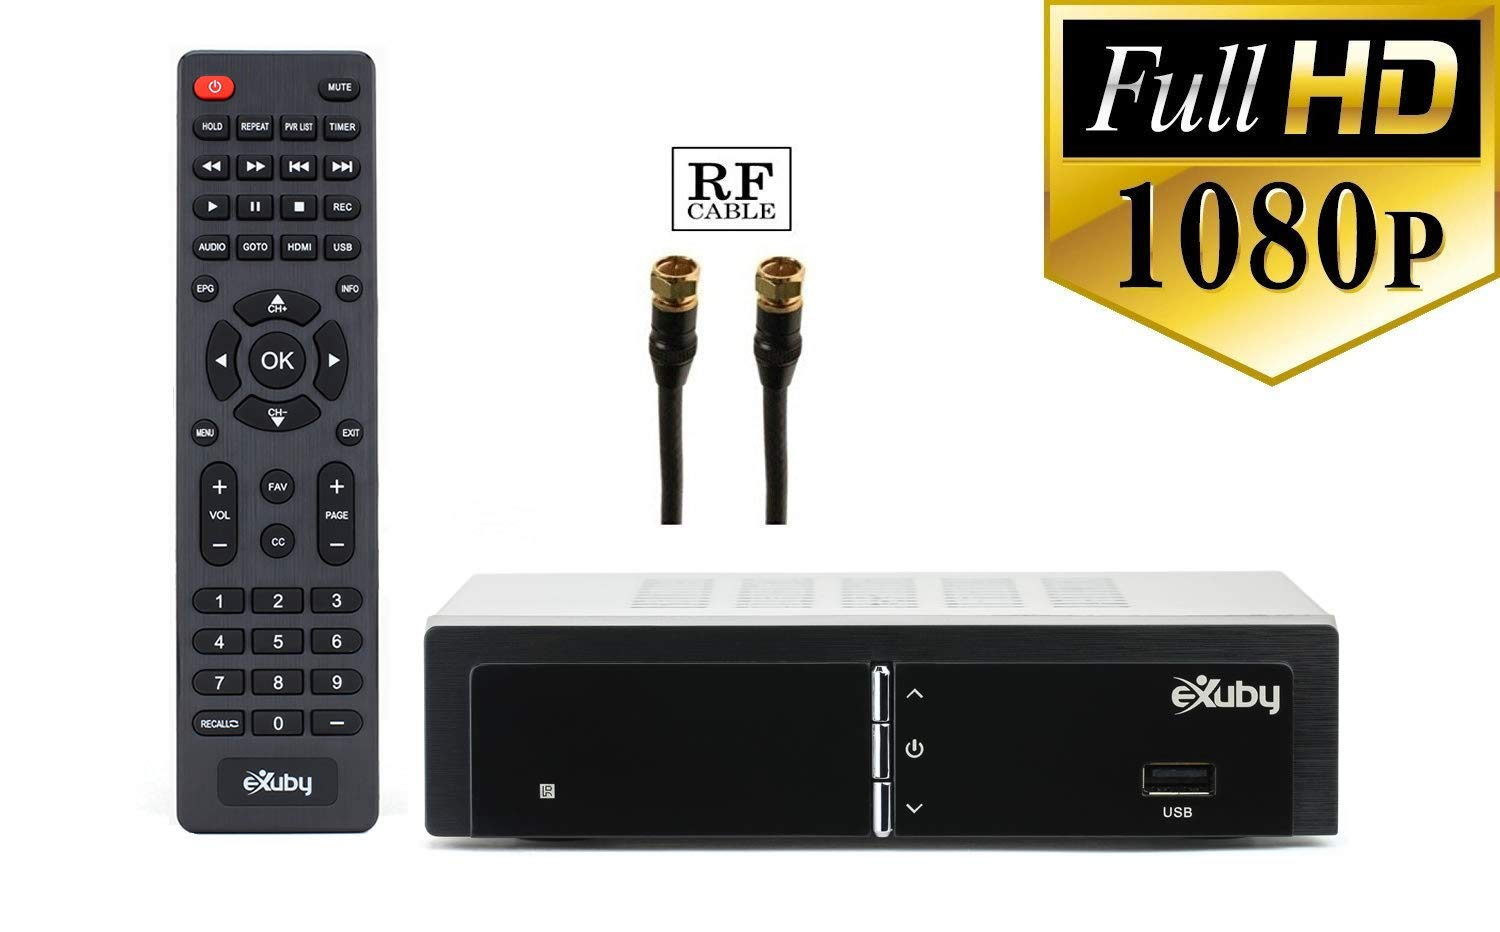 Exuby Digital Converter Box for TV w/ RF/Coaxial Cable for Recording and Viewing Full HD Digital Channels (Instant or Scheduled Recording, 1080P HDTV, HDMI Output, 7 Day Program Guide)